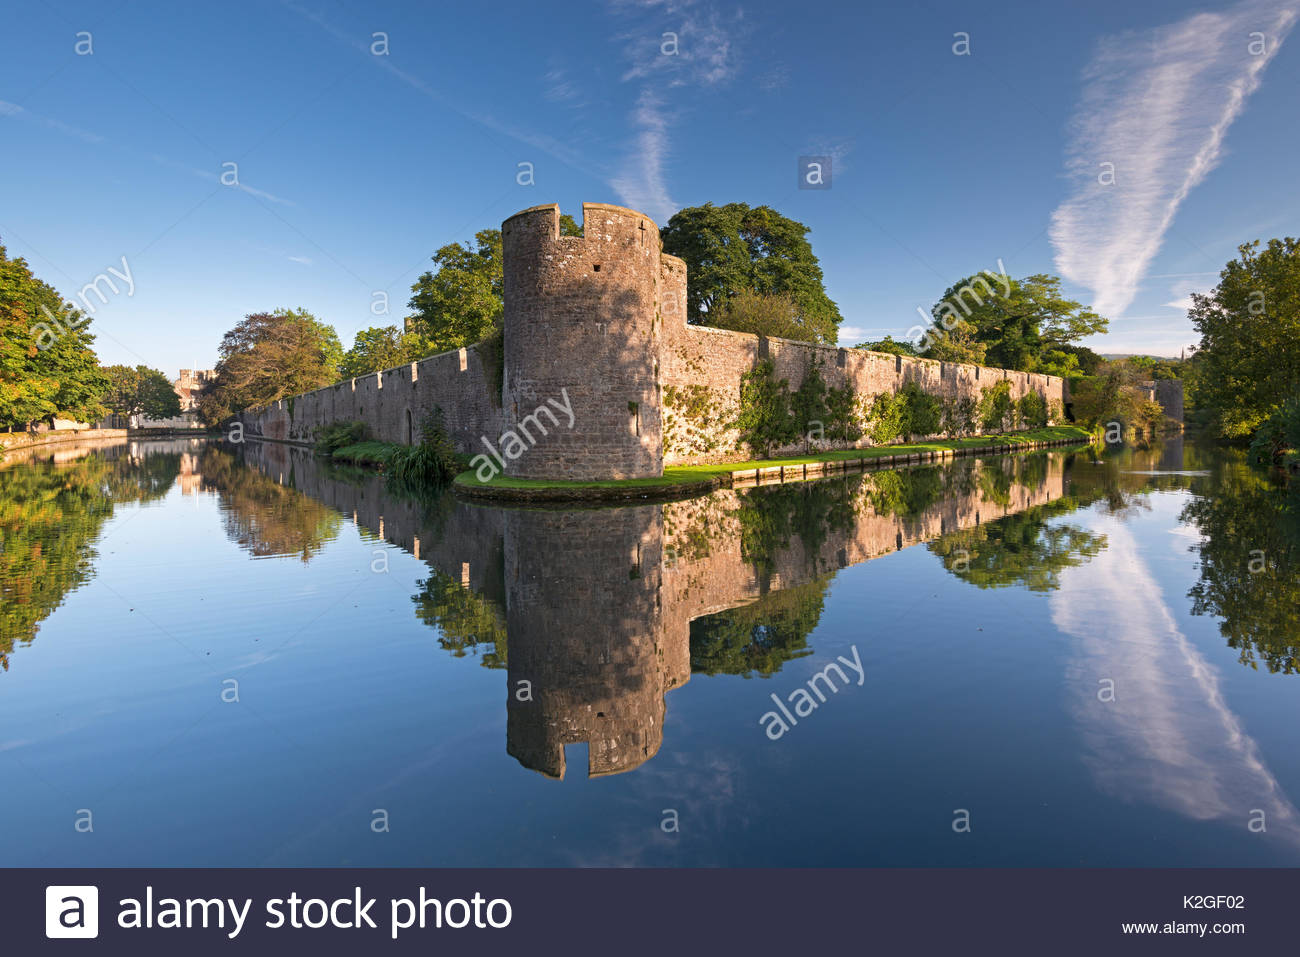 Bishop's Palace and moat in the city of Wells, Somerset, England, UK. September 2013. - Stock Image